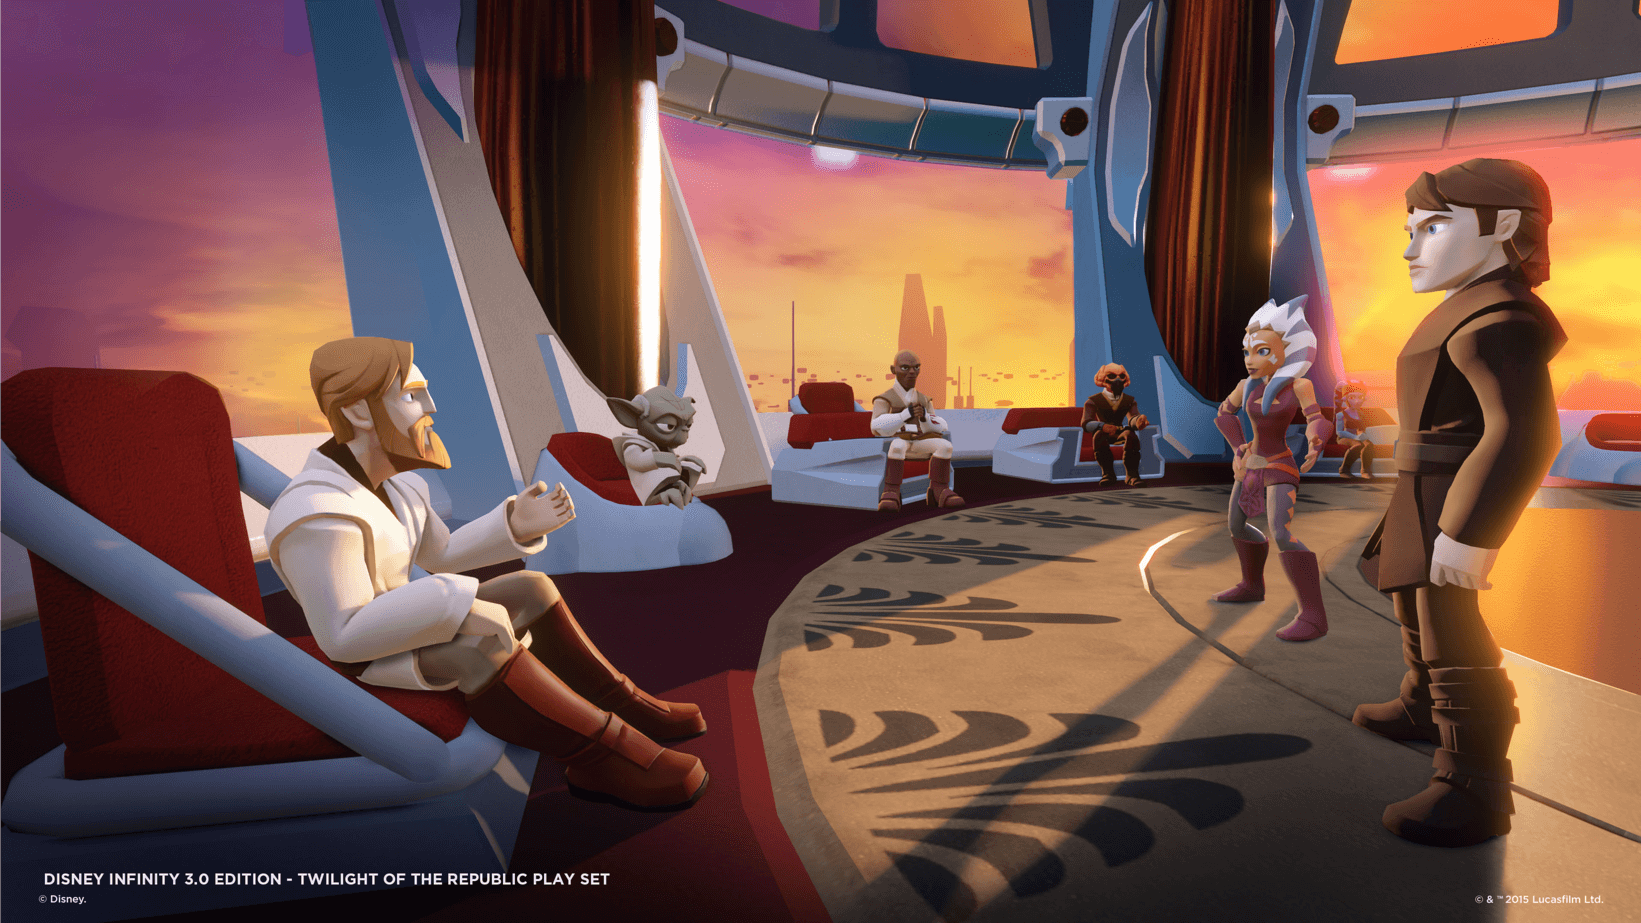 Disney Infinity: Twilight of the Republic Gameplay